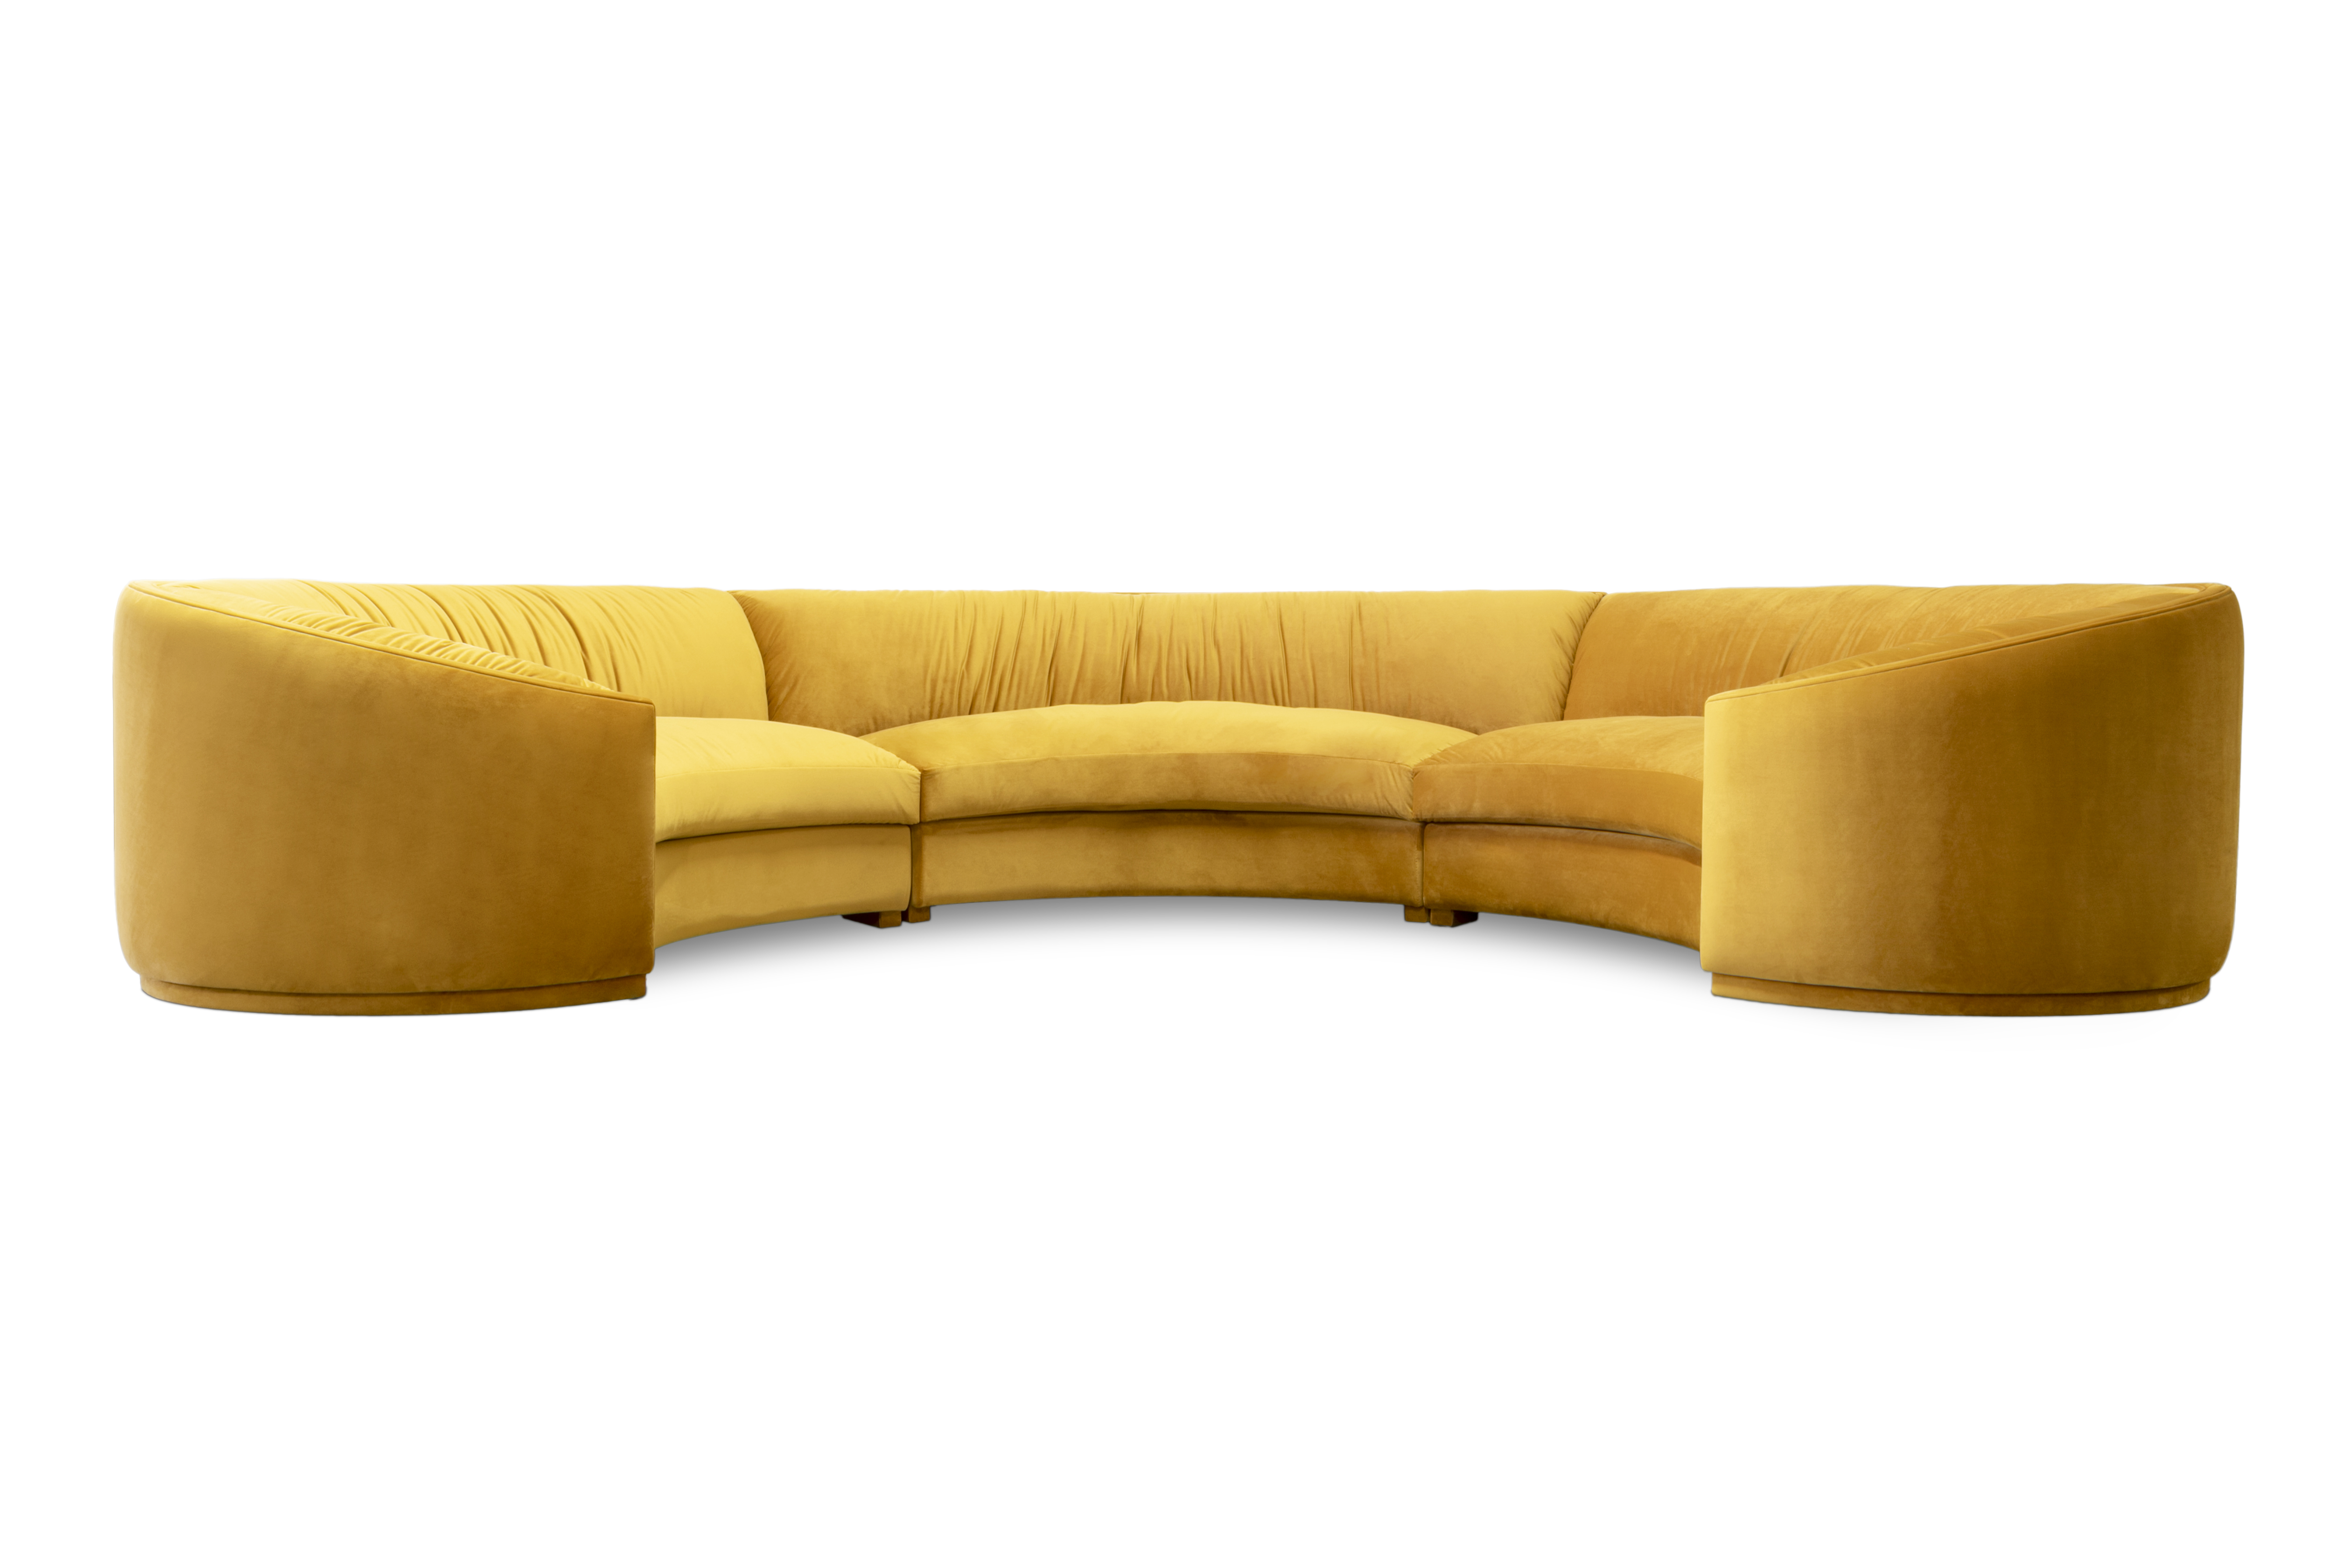 New Products For Interiors Full Of Personality